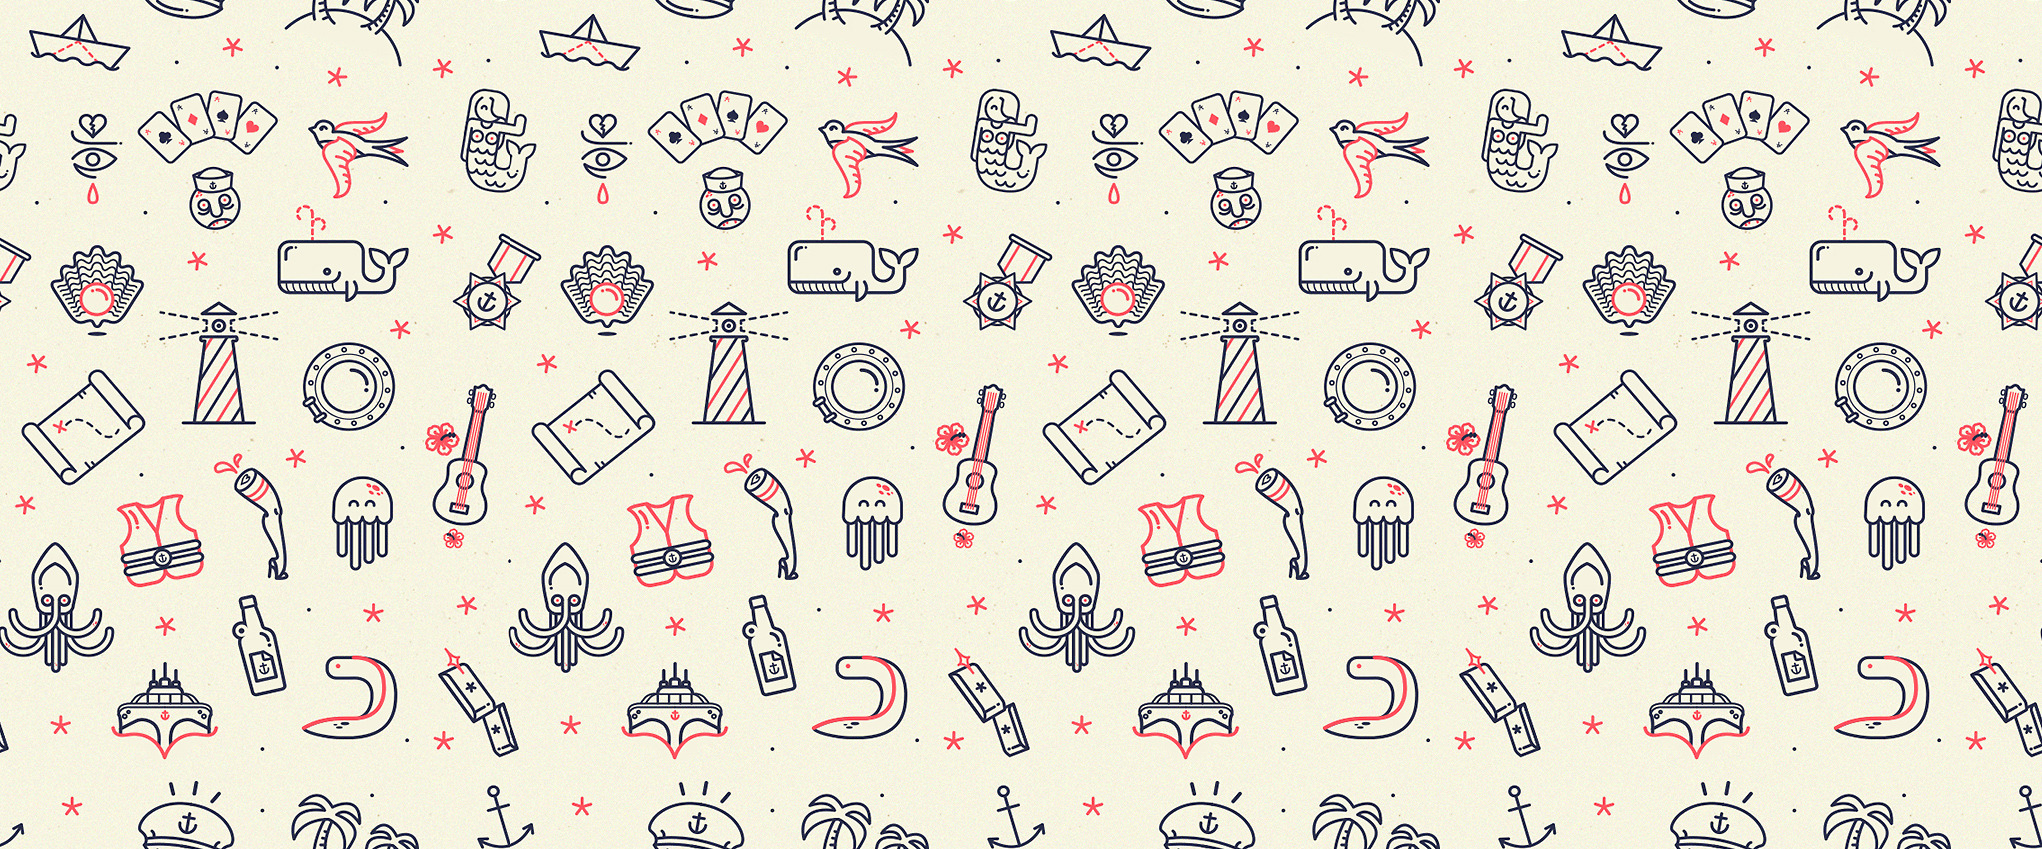 Dog Quote Wallpaper Get Free Patterns From The Pattern Library The